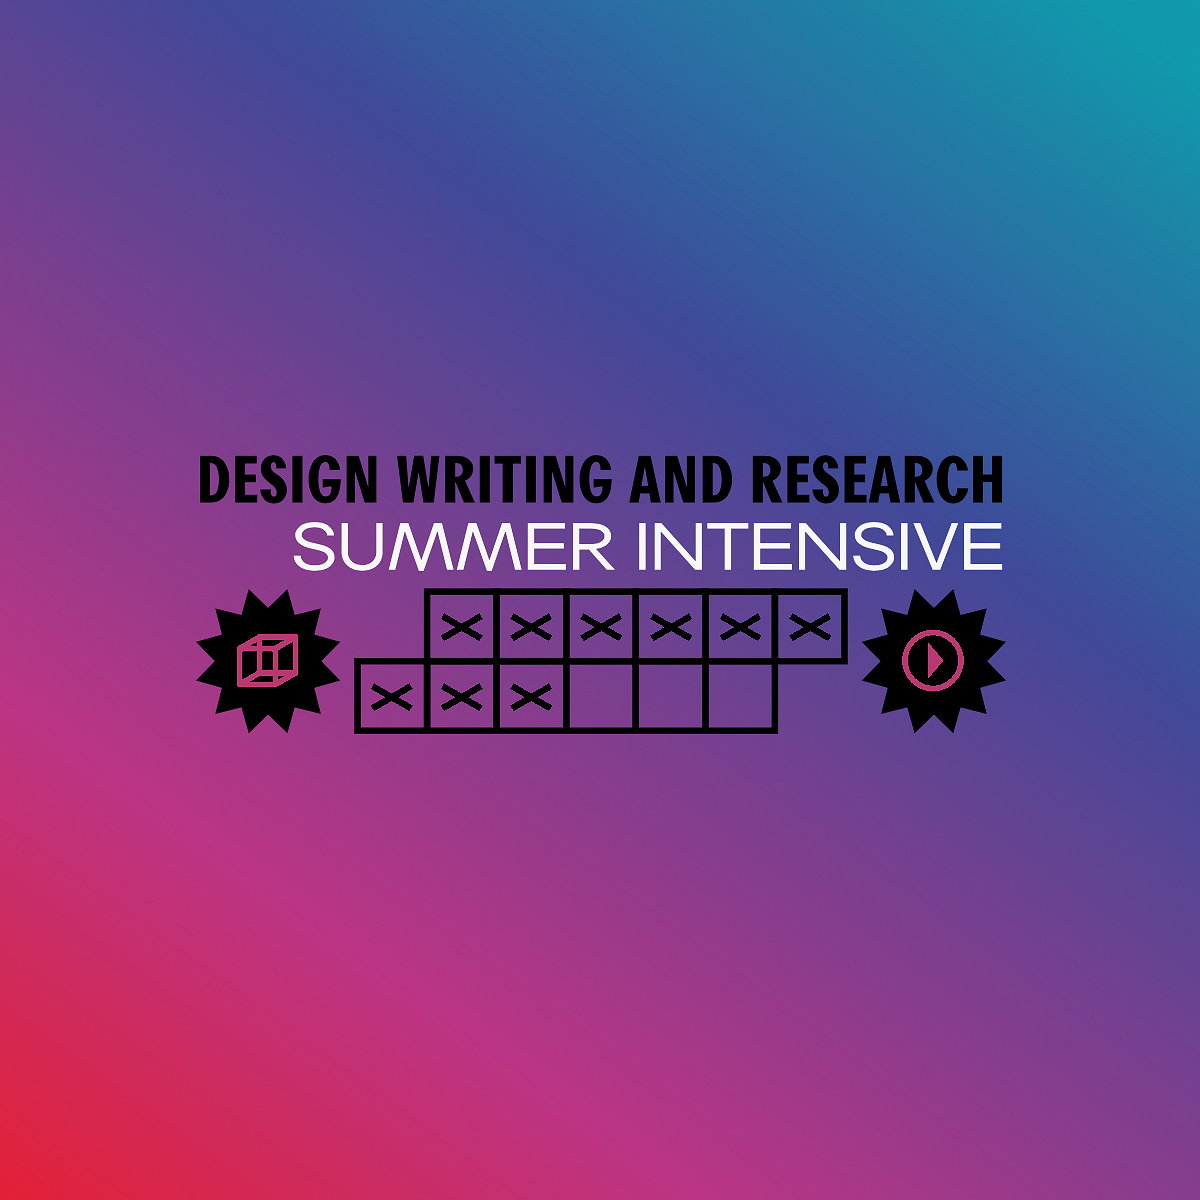 2016 Design Writing and Research Summer Intensive